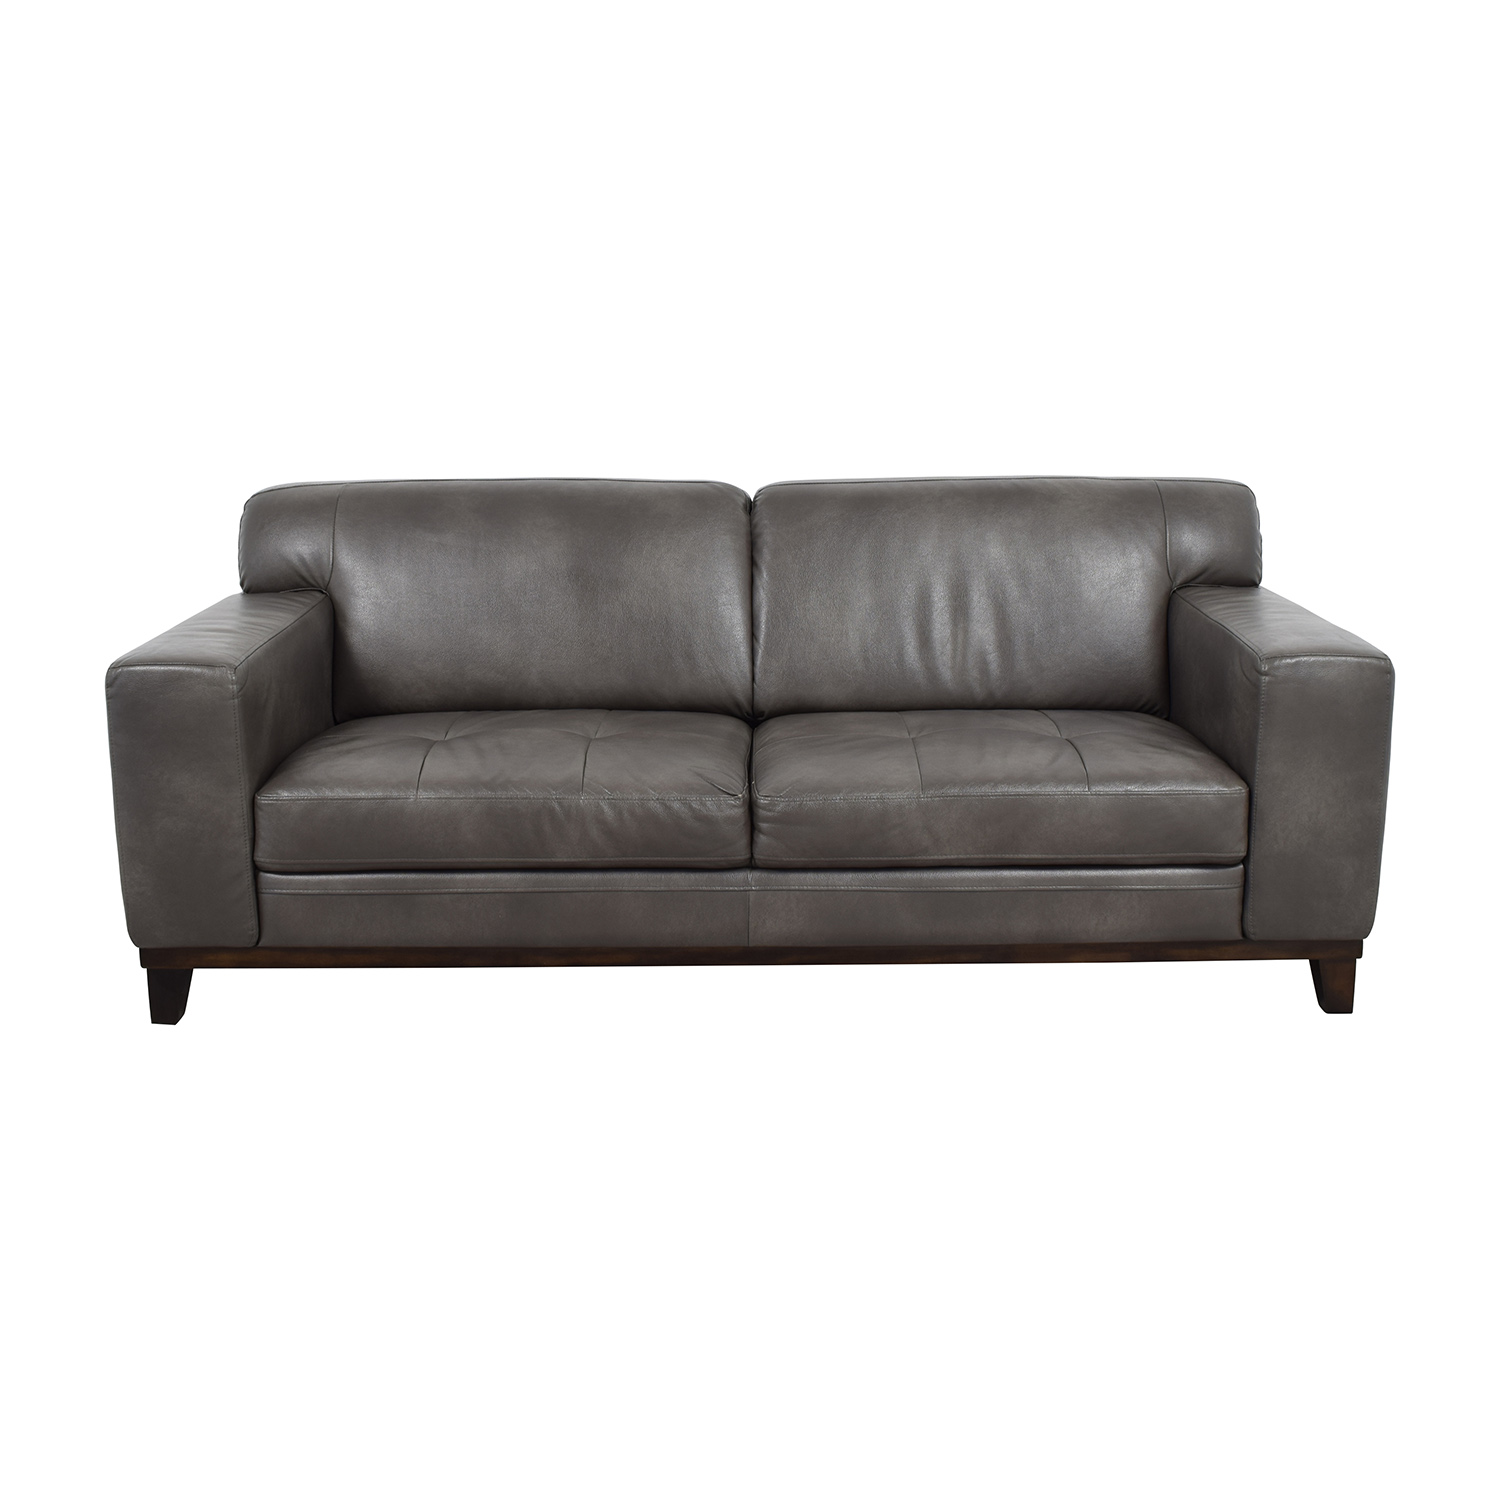 Raymour & Flanigan Grey Leather Couch / Classic Sofas